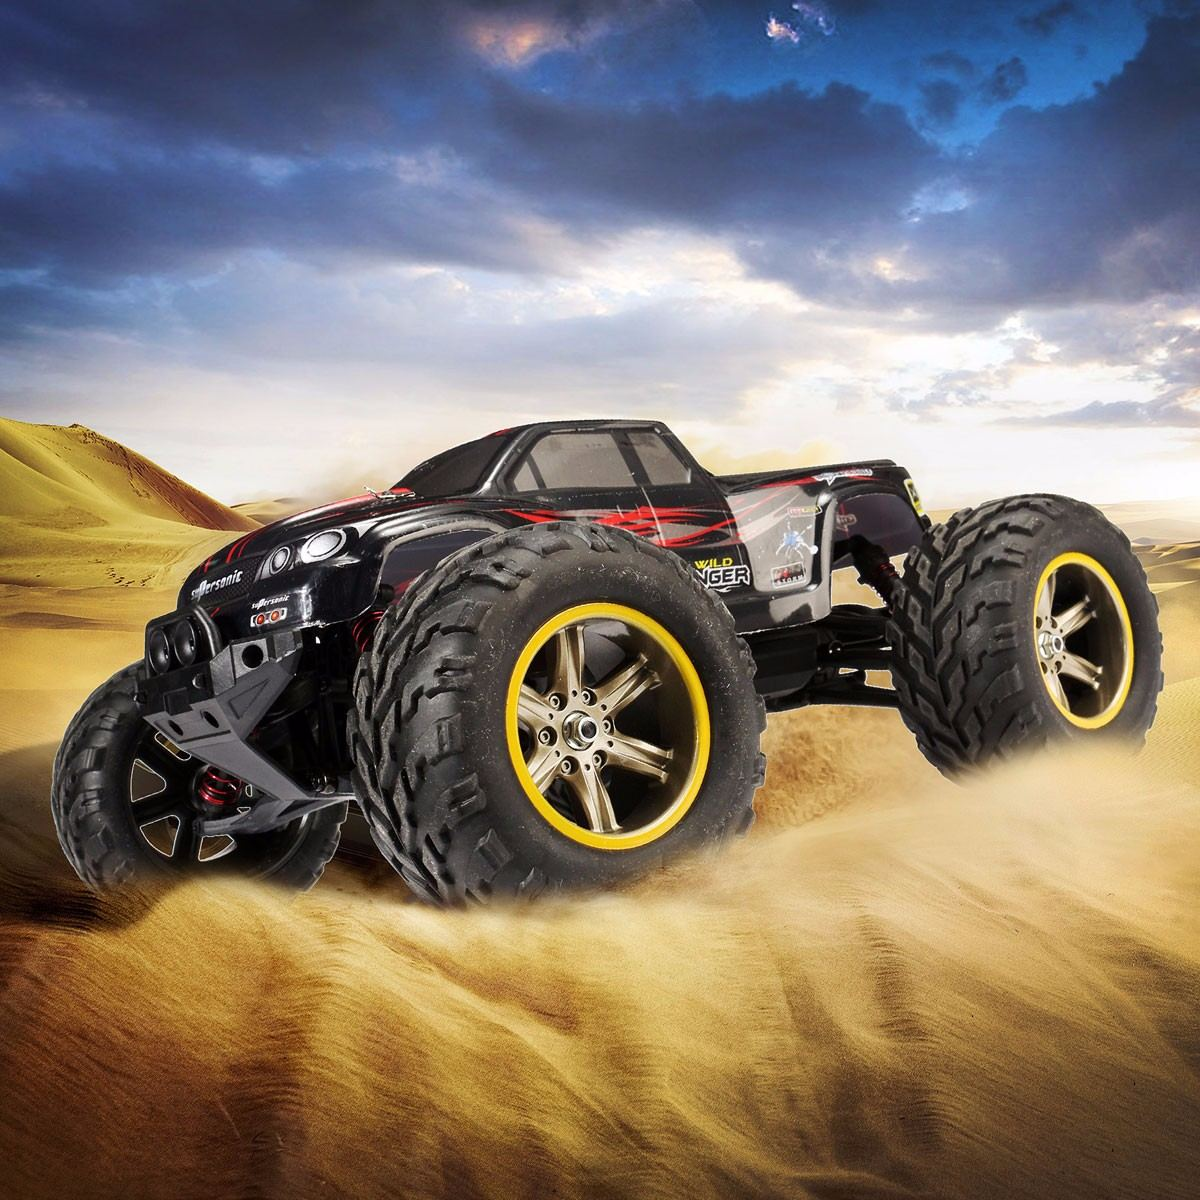 Cimbing Car RC Car Impermeable S911 RC SUV Coche 1/12 2.4GHz 2WD 6CH Alta Velocidad Control Remoto For Boys Kids TransmitterCimbing Car RC Car Impermeable S911 RC SUV Coche 1/12 2.4GHz 2WD 6CH Alta Velocidad Control Remoto For Boys Kids Transmitter